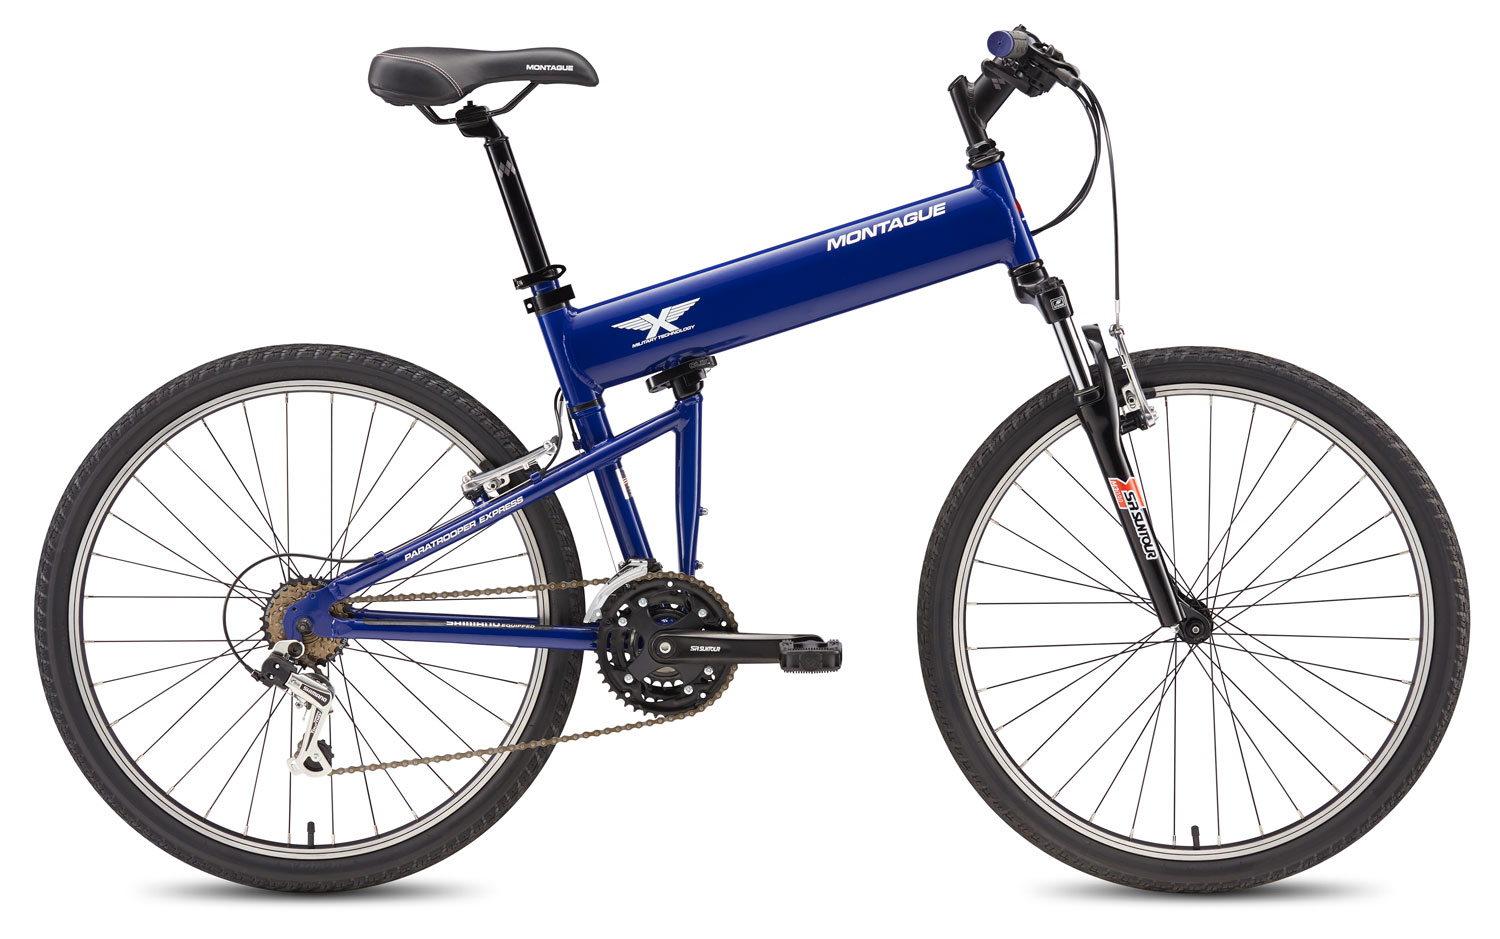 Montague Paratrooper Express Folding Bike Open